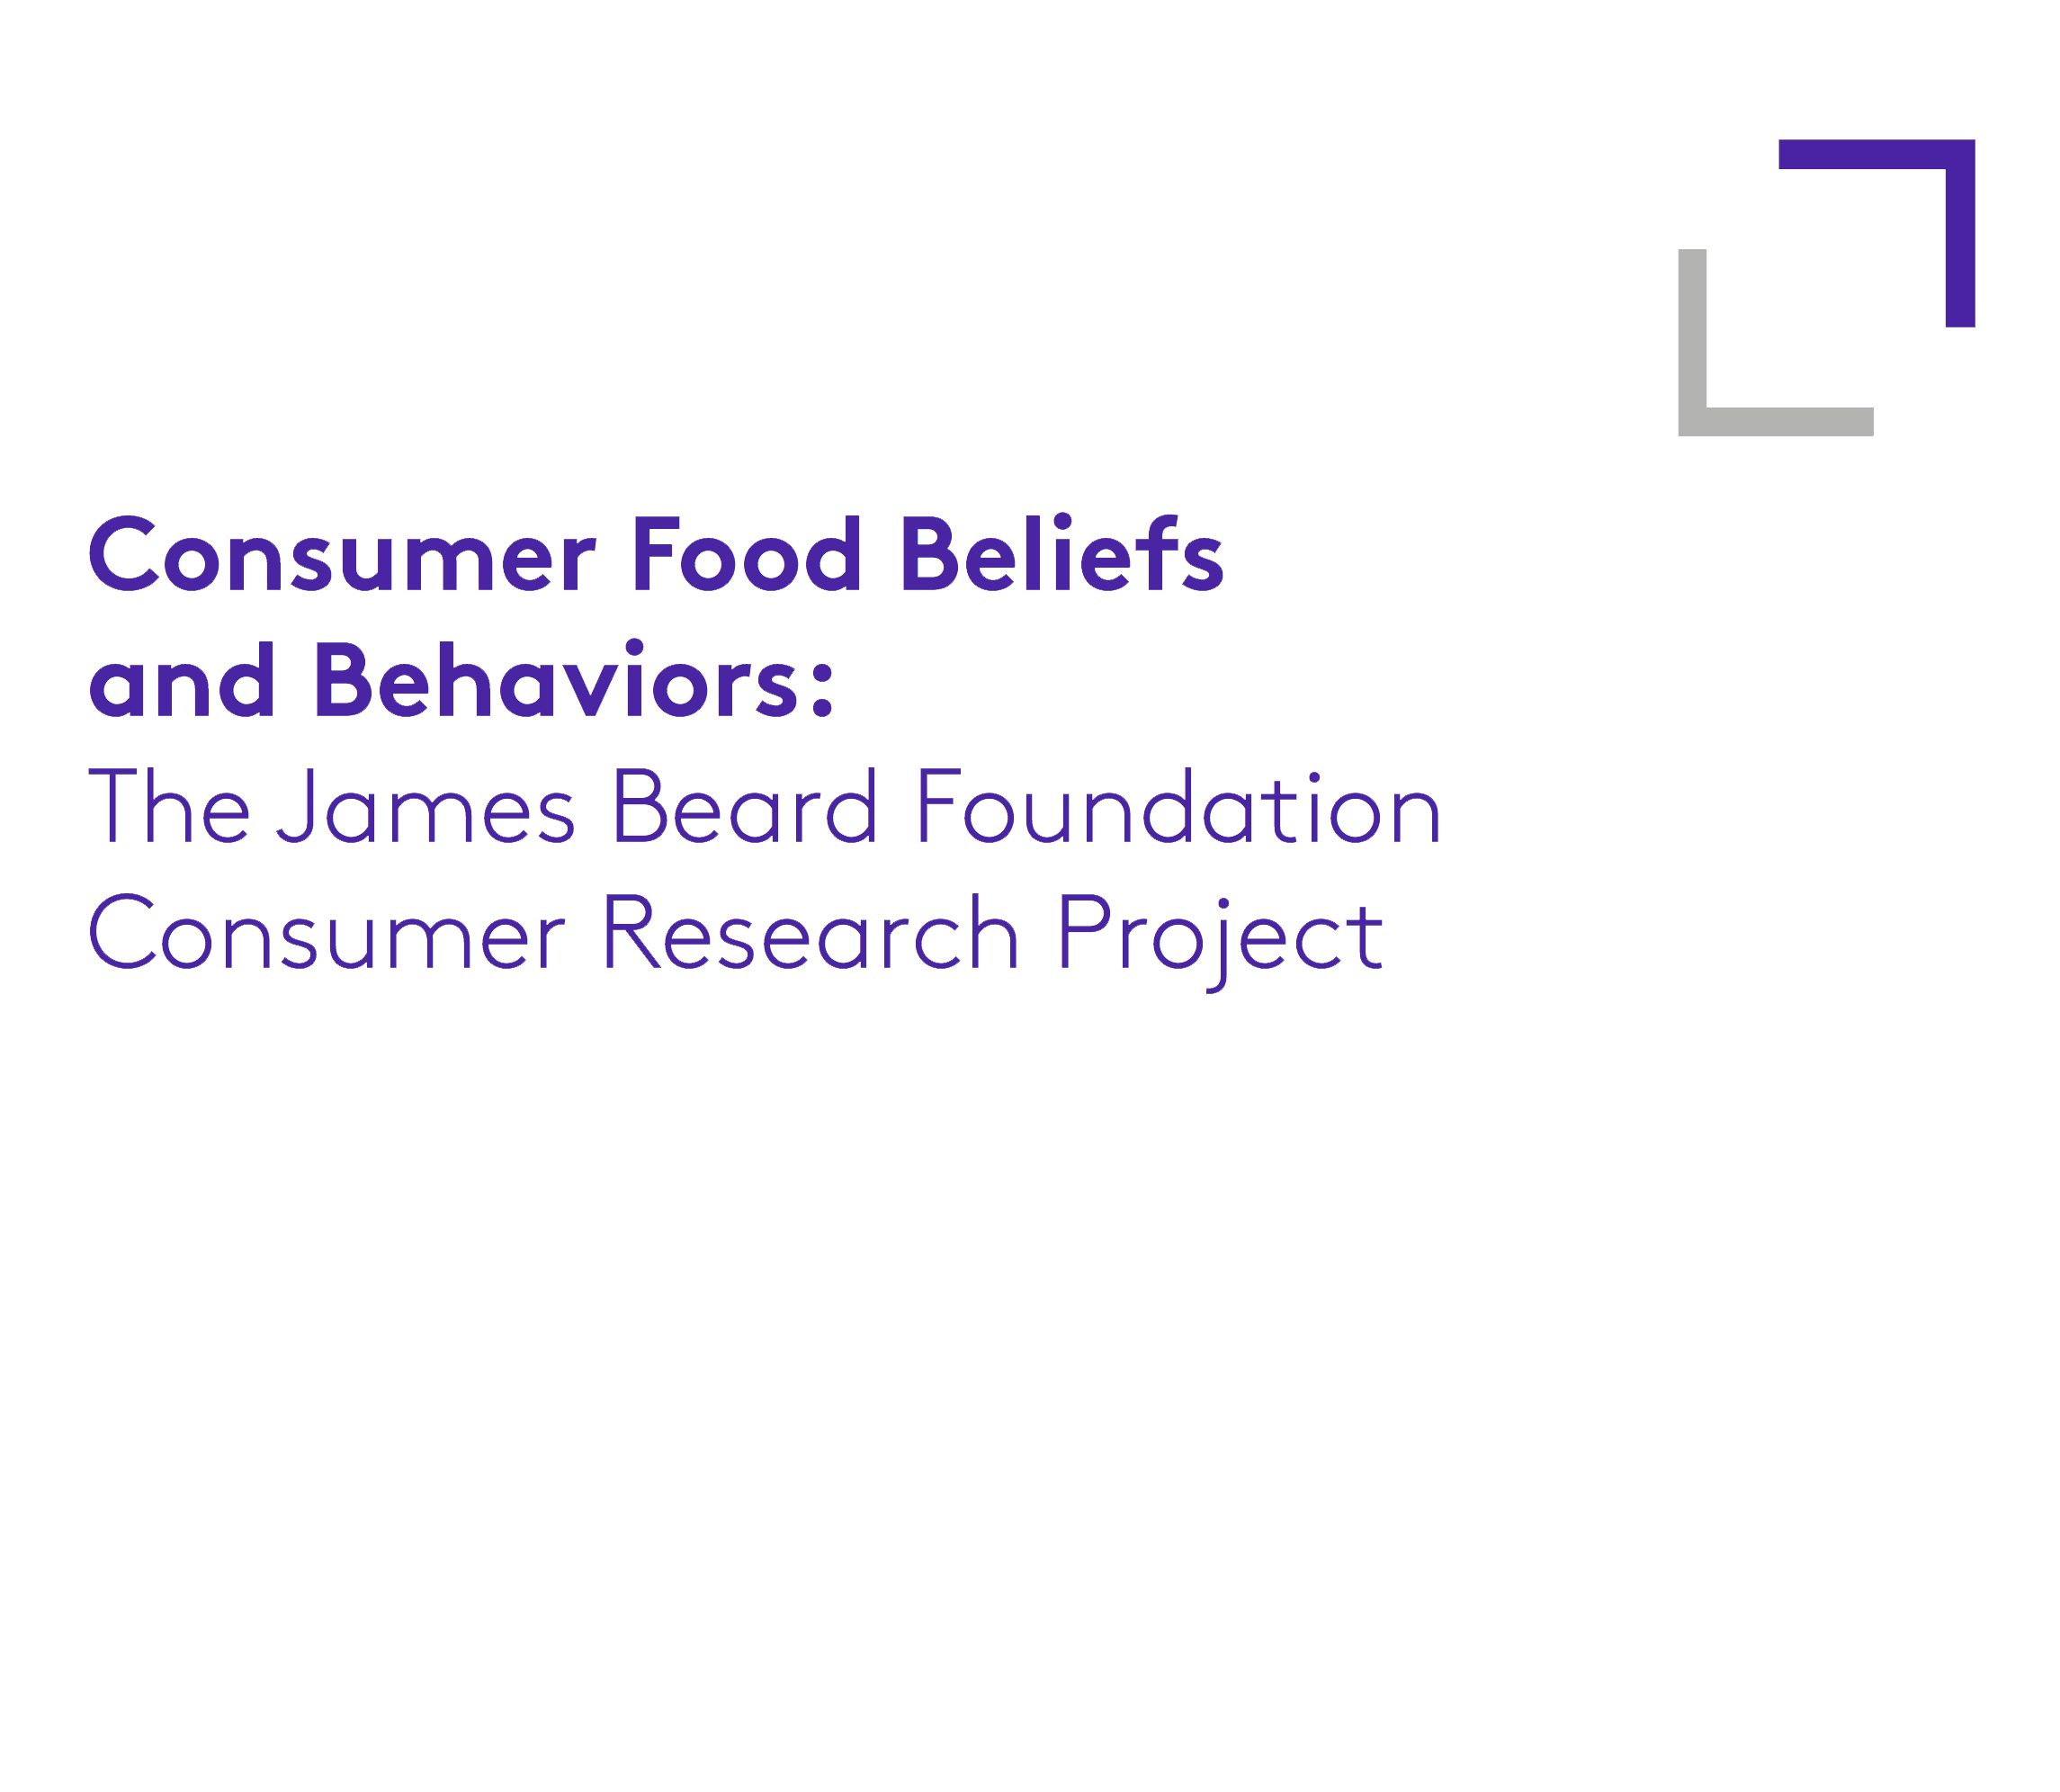 Consumer Food Beliefs and Behaviors